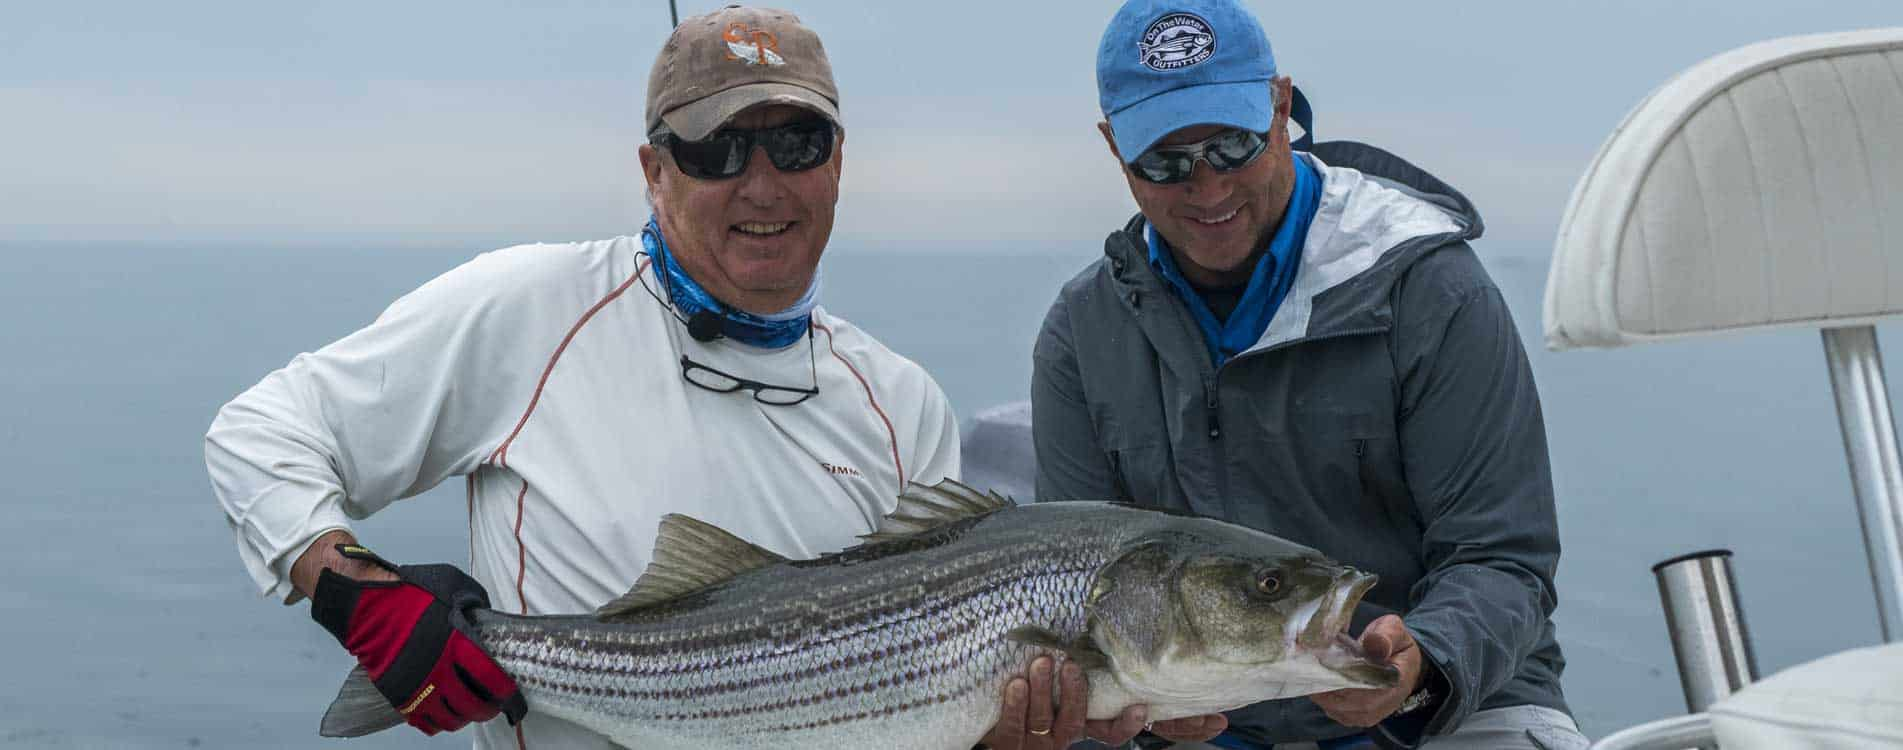 We fish primarily for larger Striped Bass and Schoolies